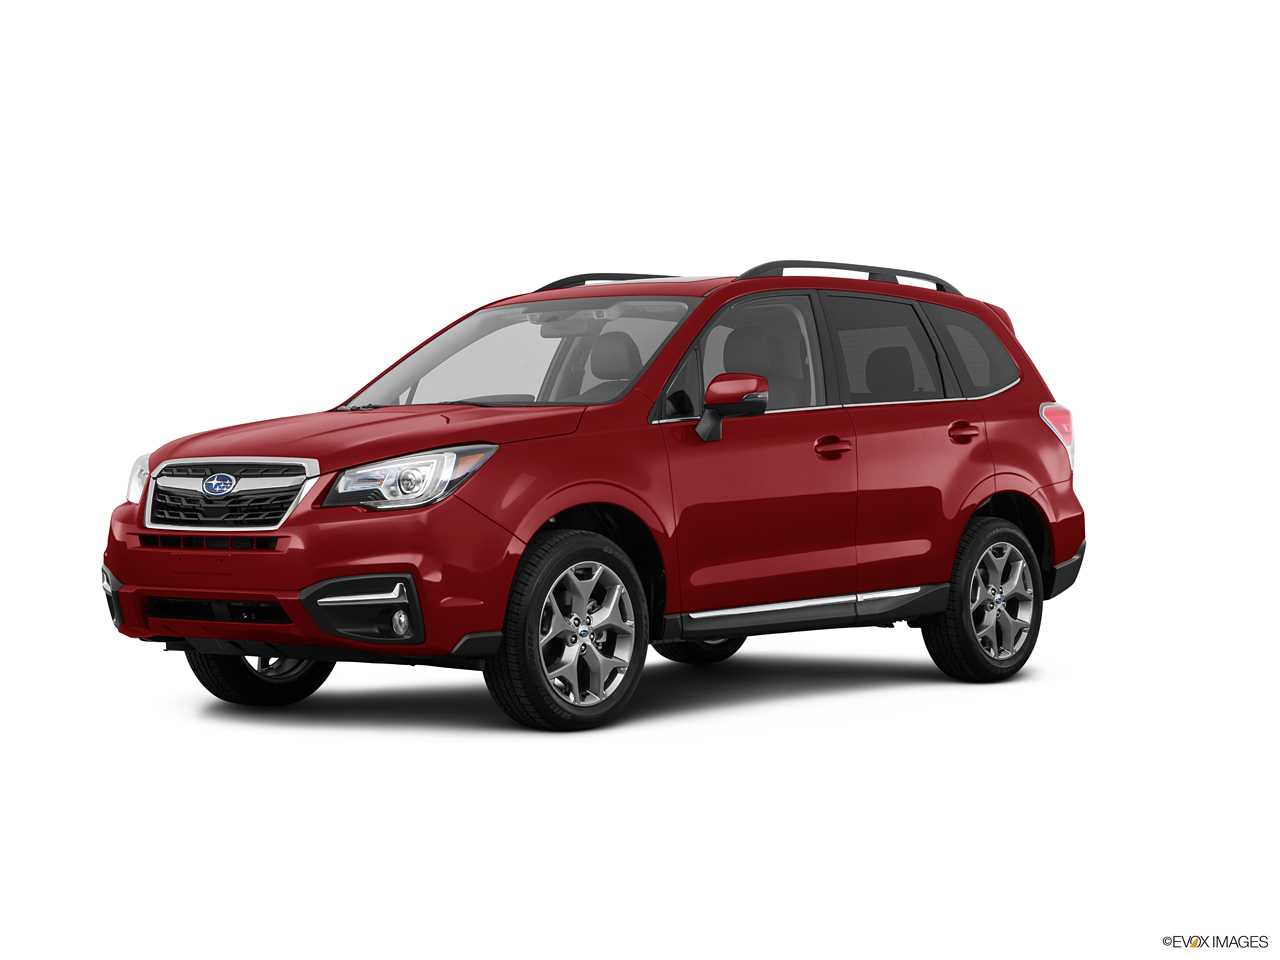 Car pictures list for subaru forester 2017 qatar for Subaru forester paint job cost